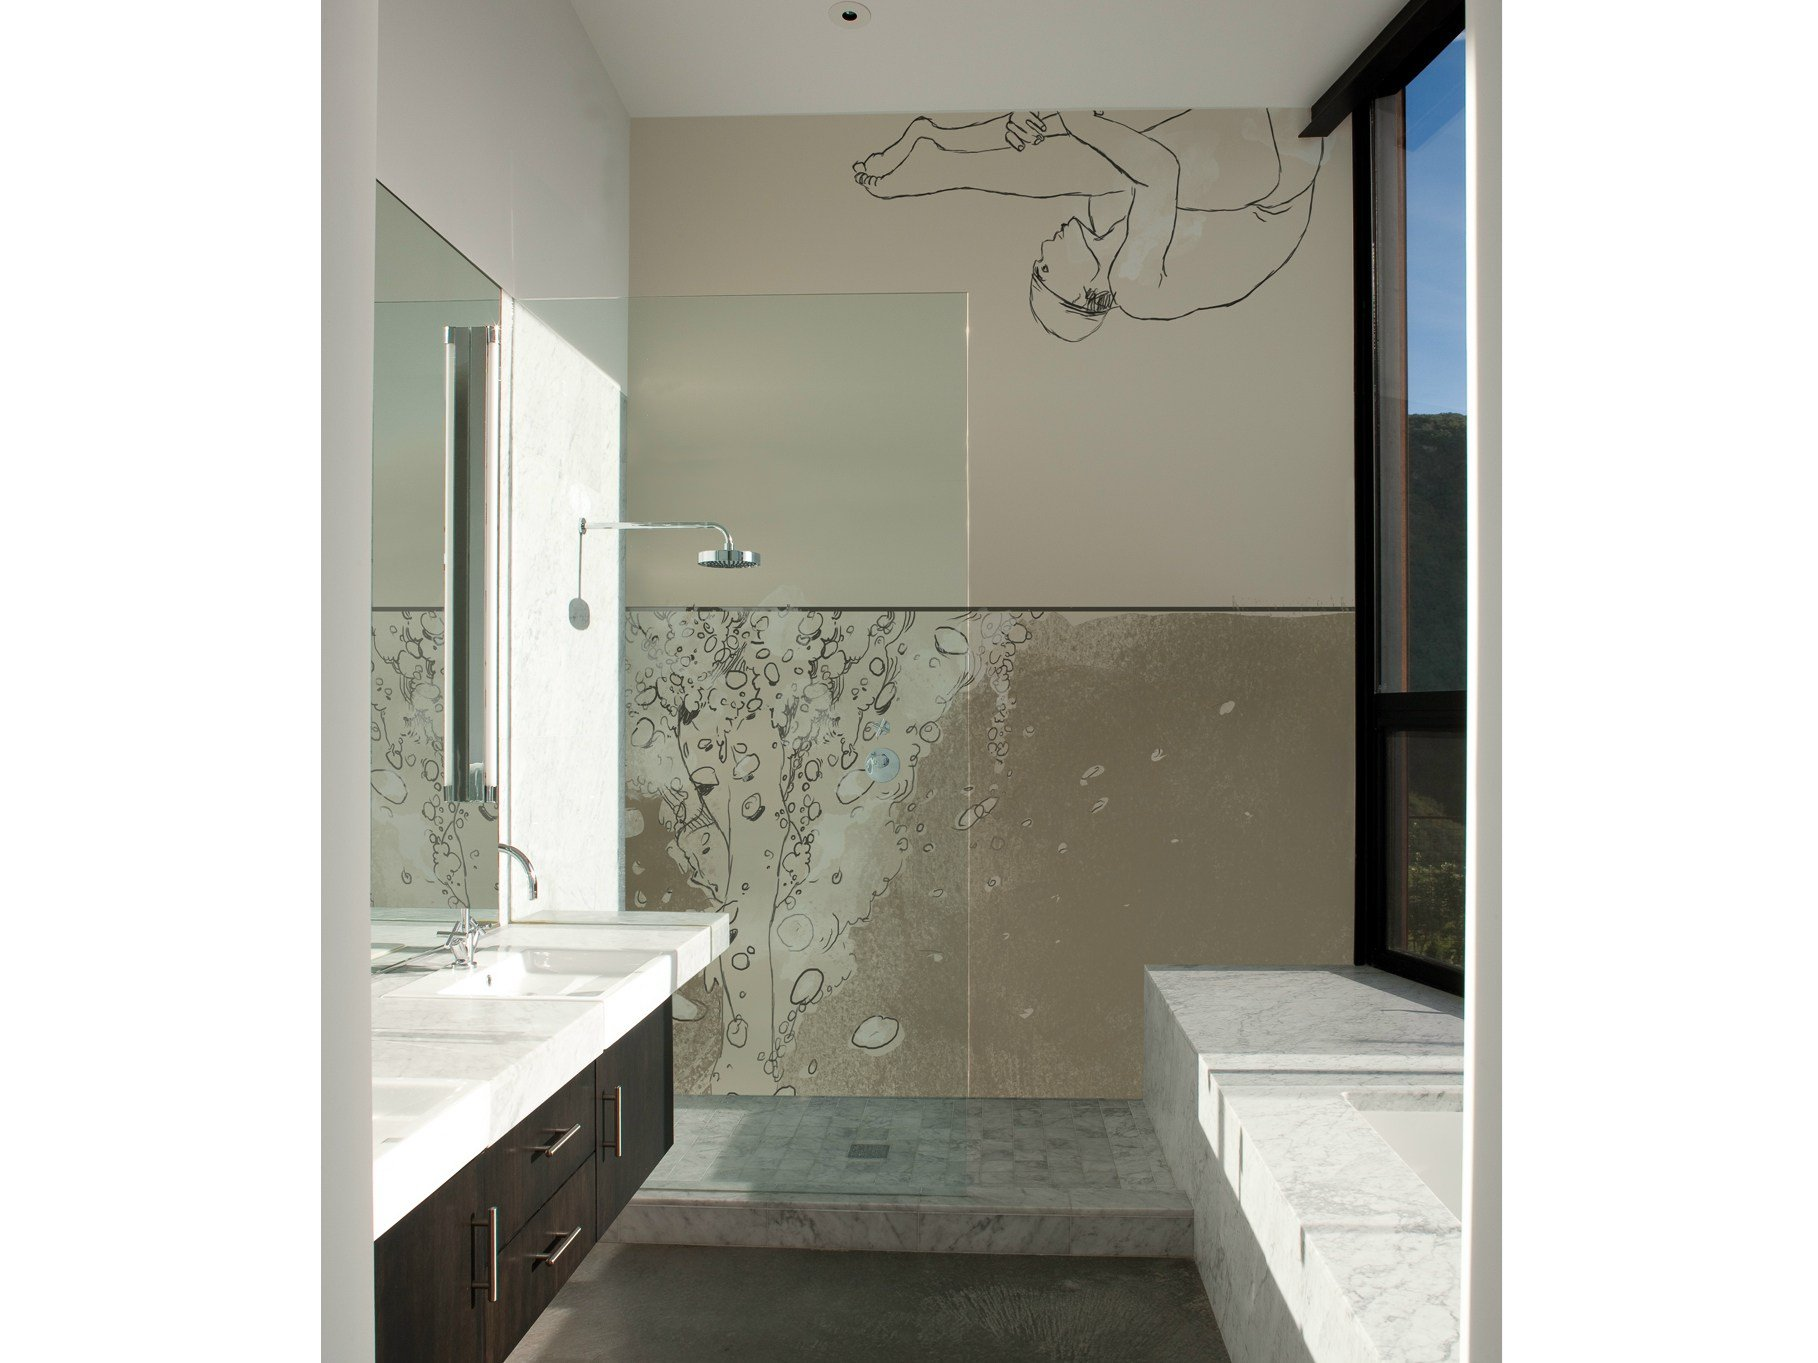 Carta da parati per bagno splash by wall dec design am - Carta da parati ikea prezzi ...